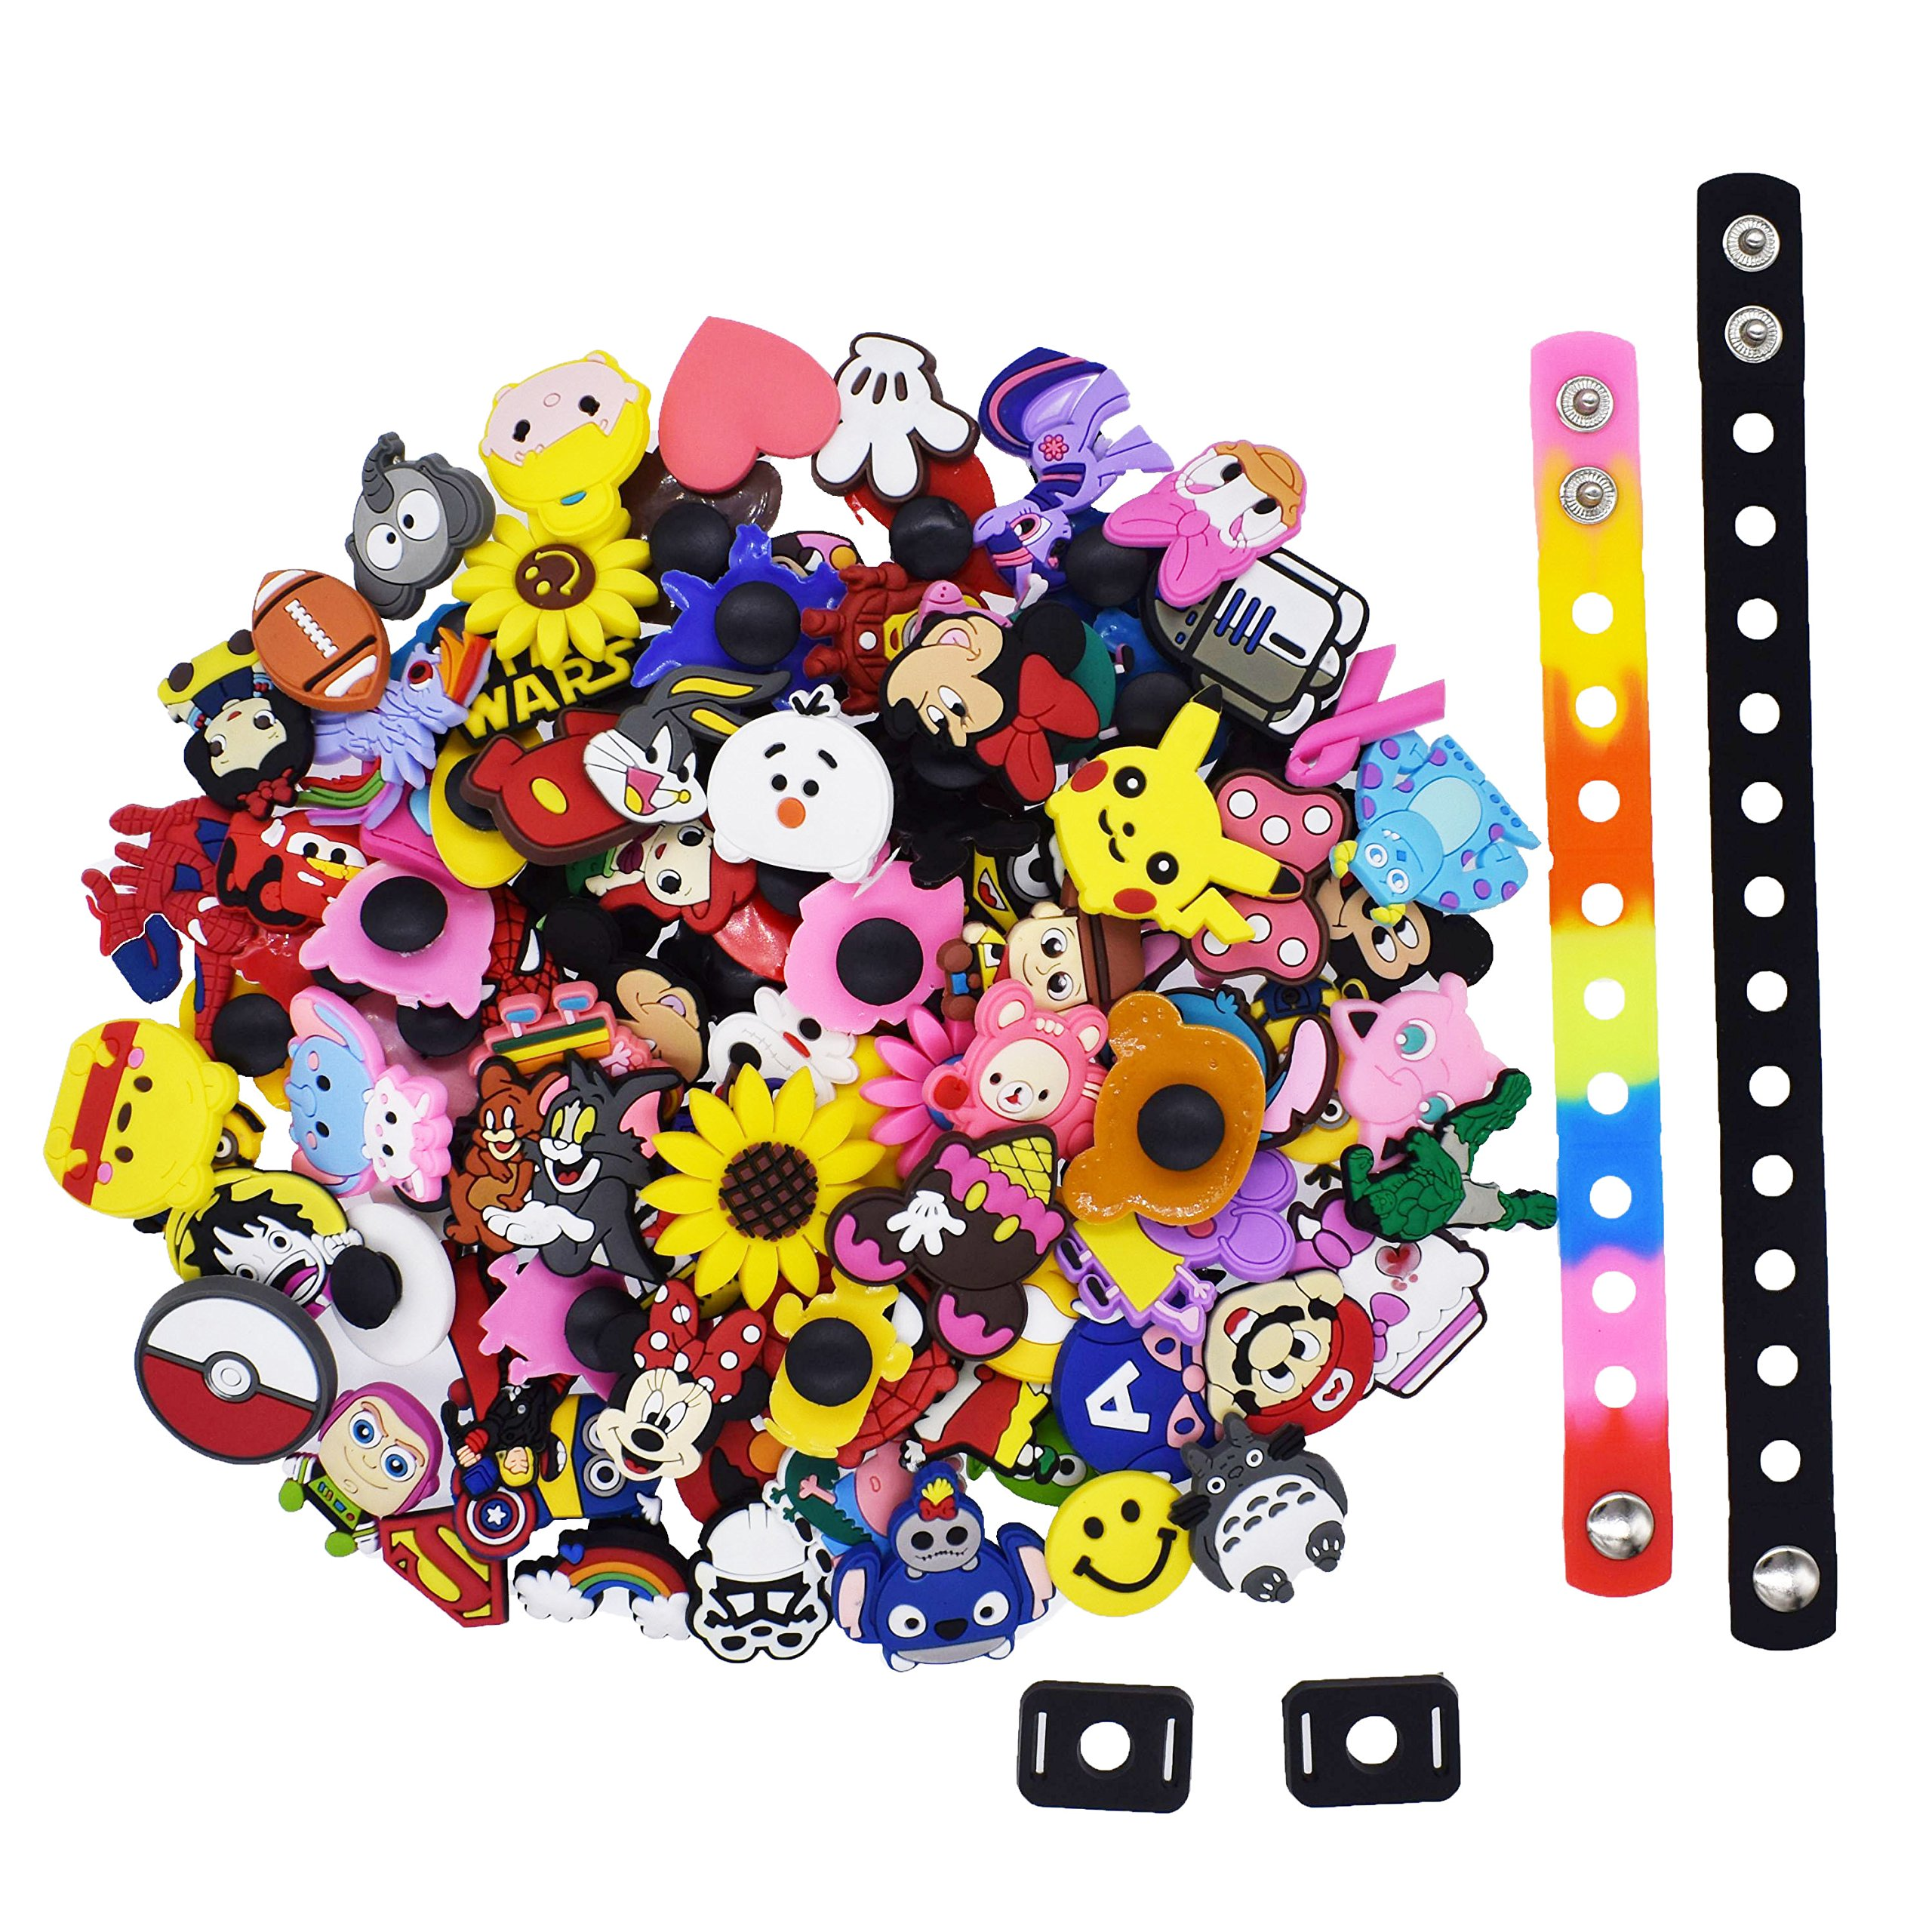 XHAOYEAHX 100Pcs Different Random Shoes Charms Decorations+2Pcs Shoe Lace Adapter +2Pcs Wristband Bracelet